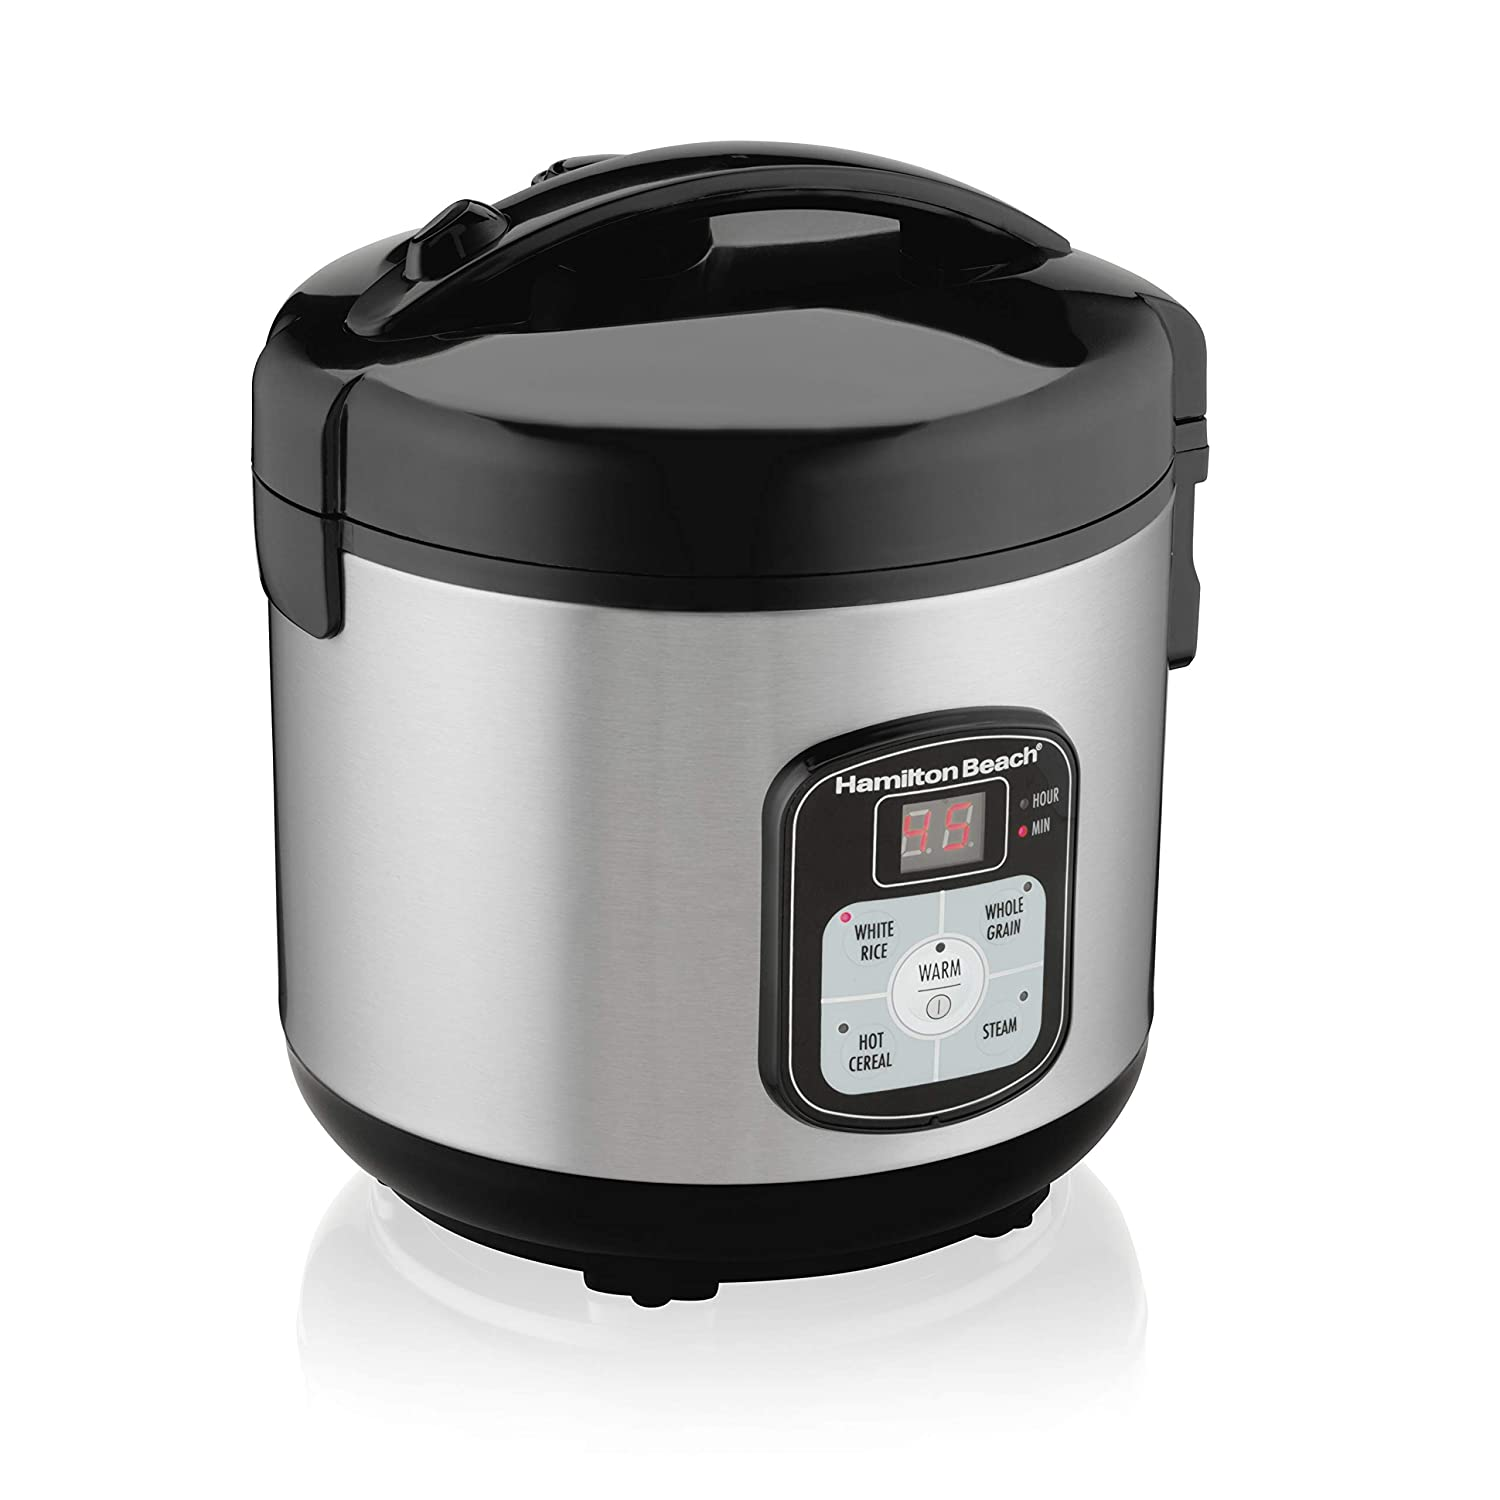 Hamilton Beach 8-Cup Rice Cooker and Steamer | Model# 37519